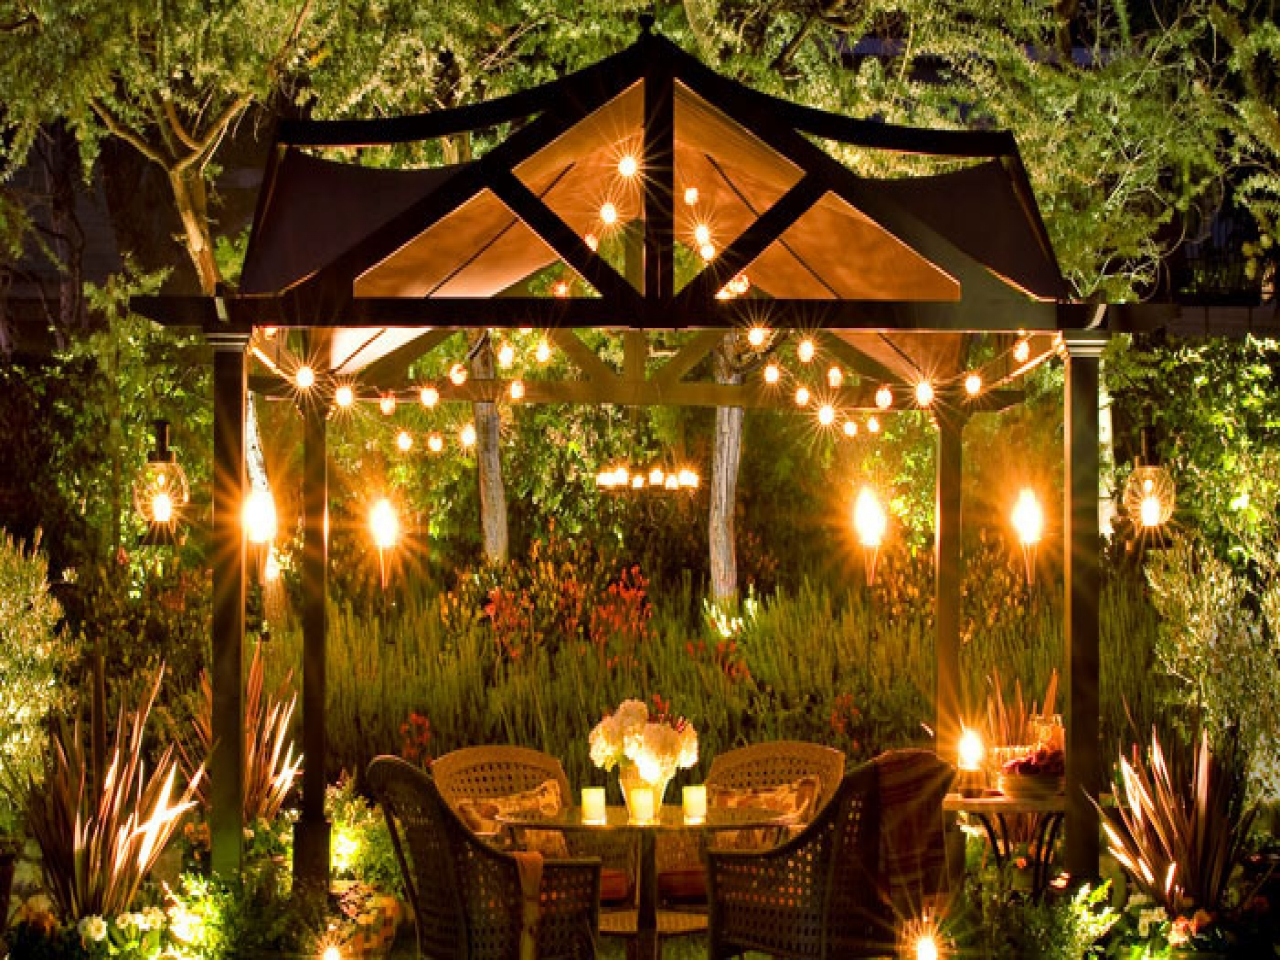 overhead-patio-lighting-ideas-outdoor-pergola-lighting-ideas-f324a7f49e46ce8e